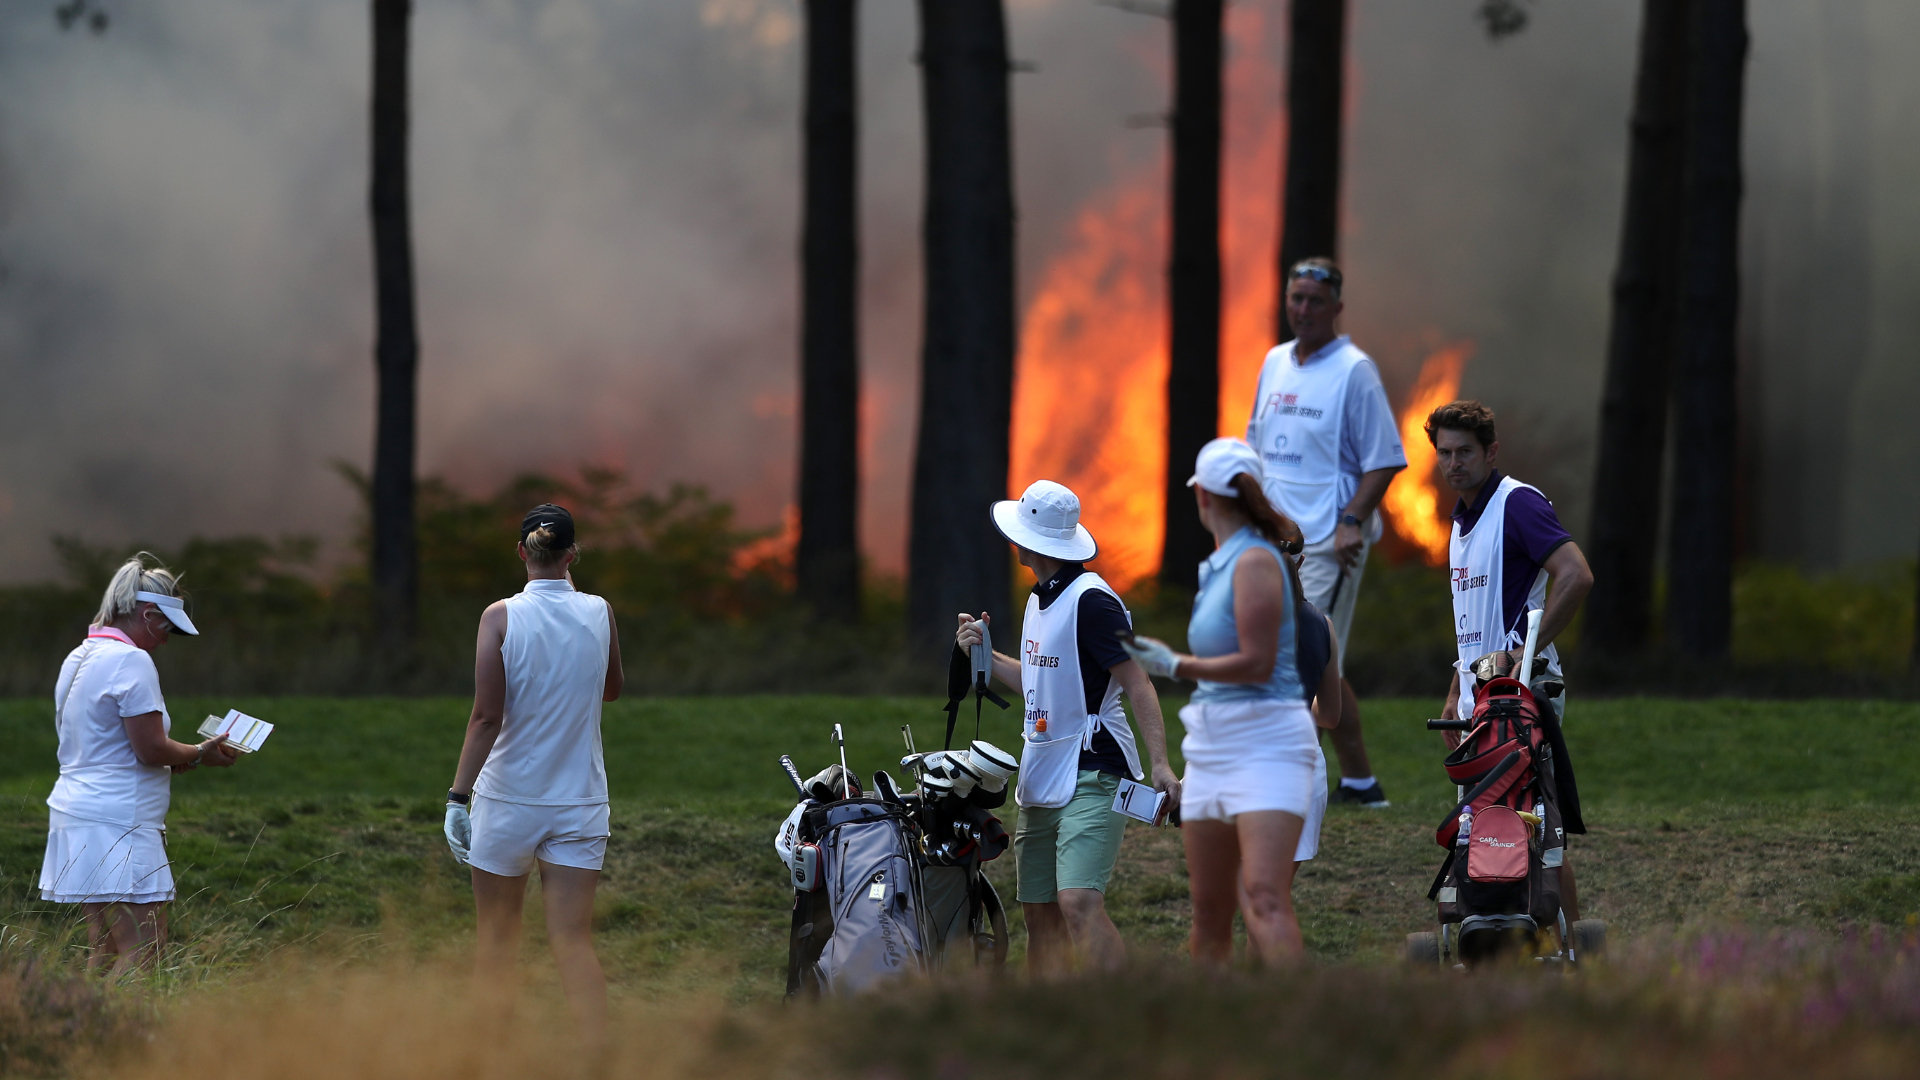 A fire that started on Chobham Common made it too dangerous for Friday's play at the Rose Ladies Series Grand Final to continue.